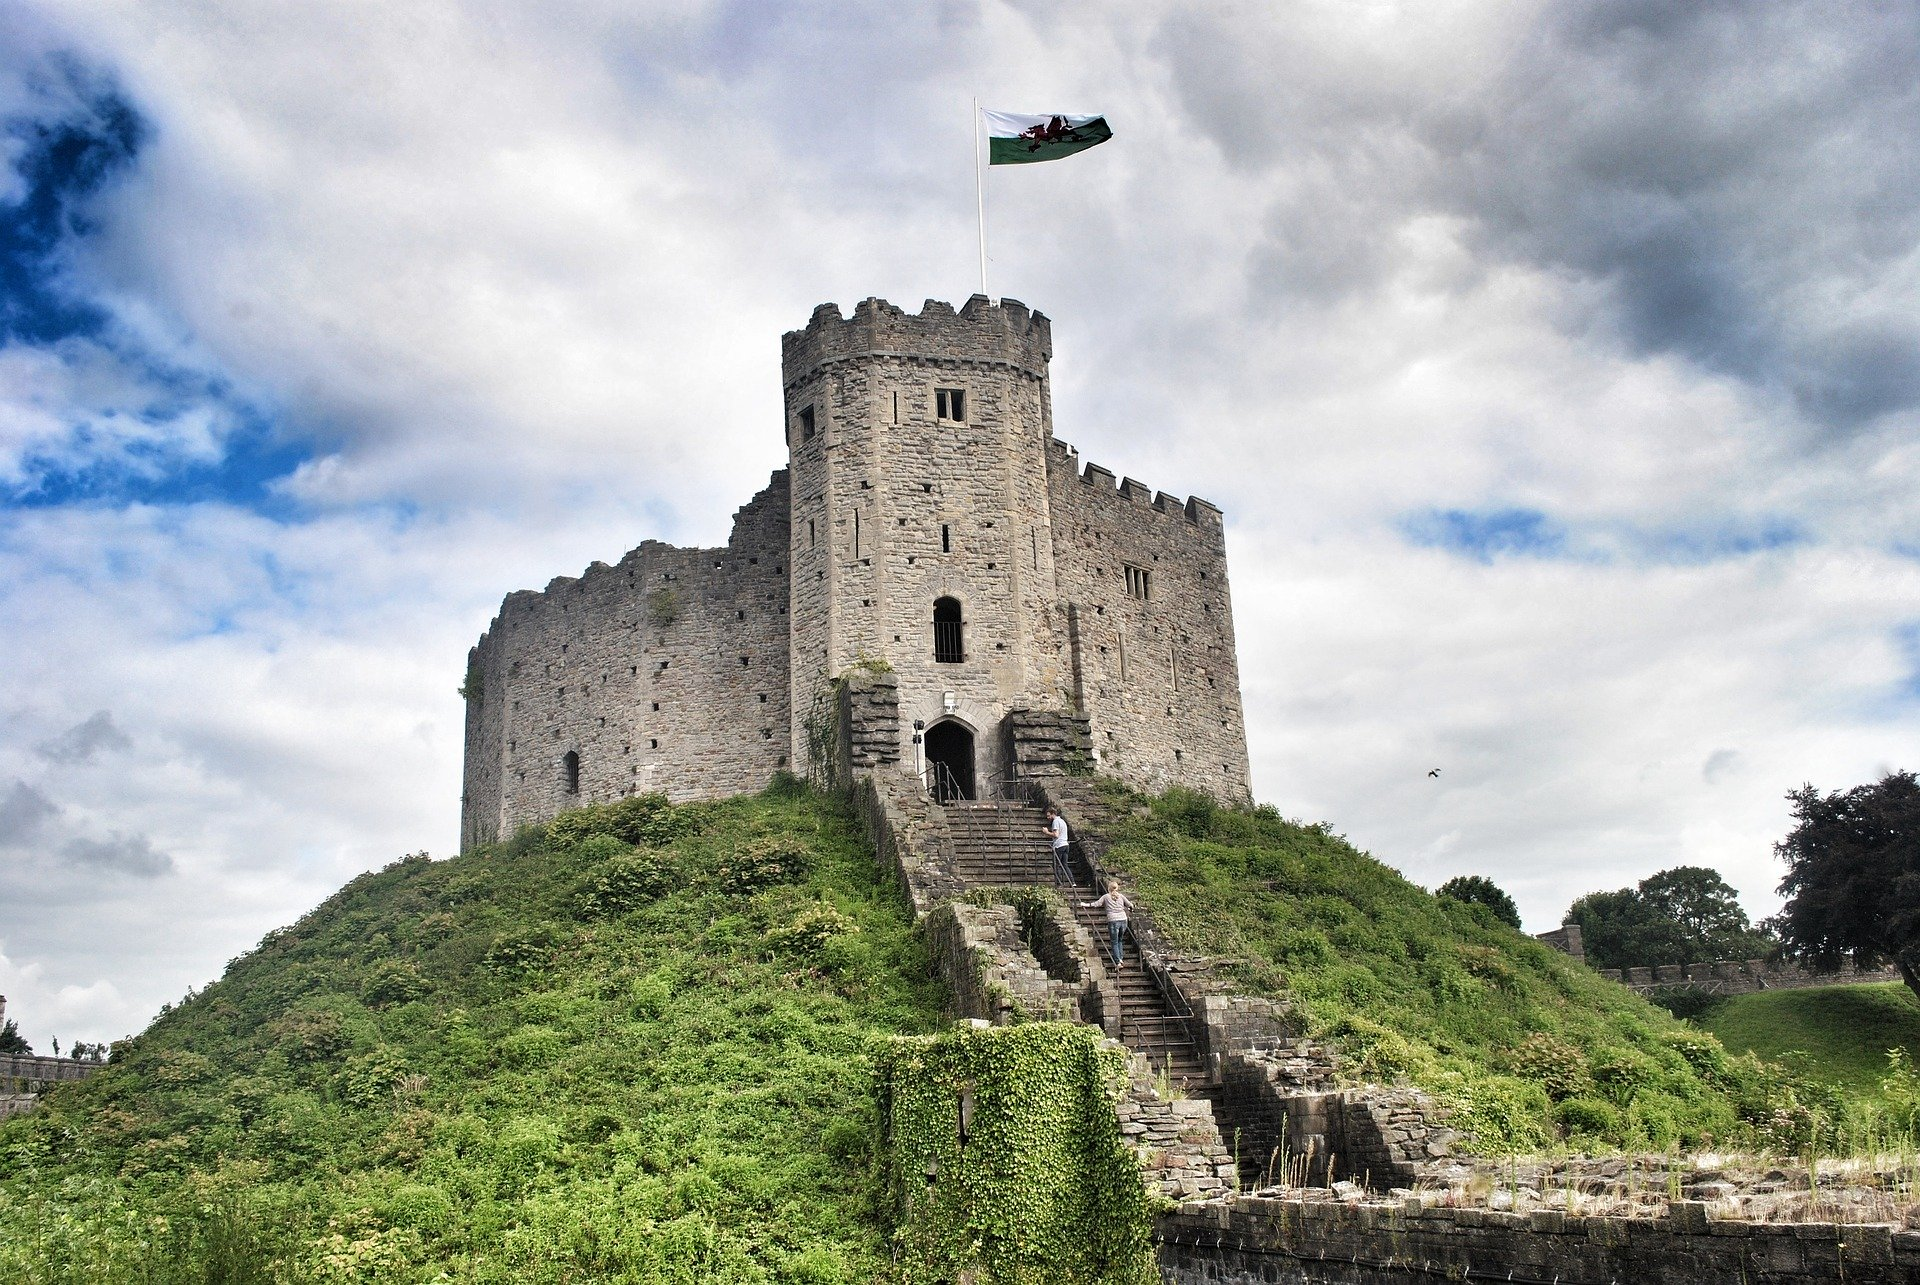 a castle on a hill with Cardiff Castle in the background